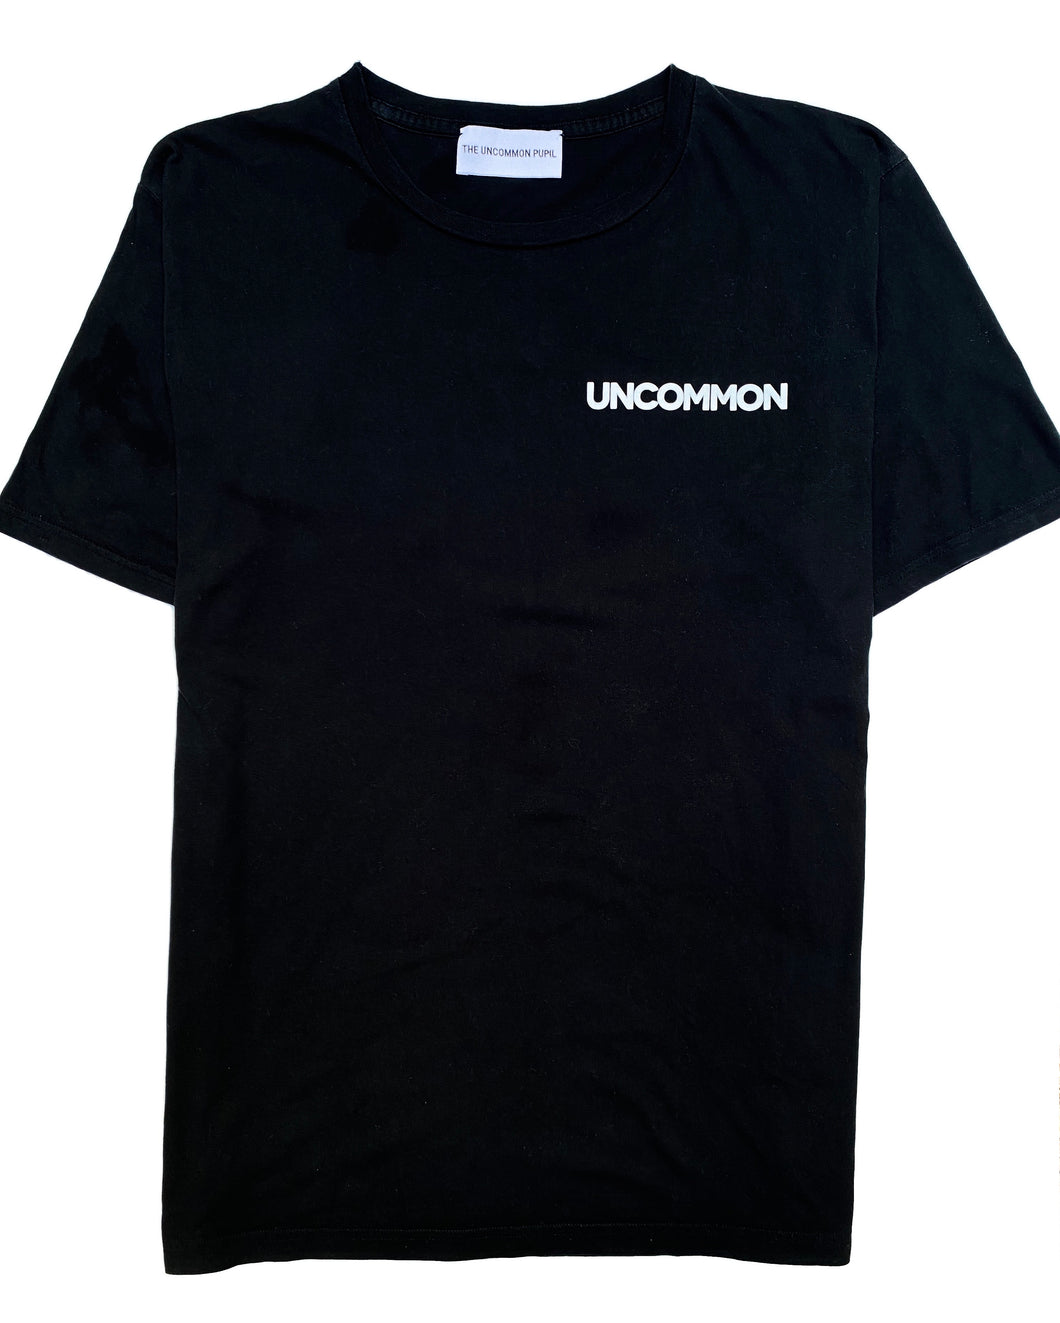 UNCOMMON Reflective T-Shirt - Black